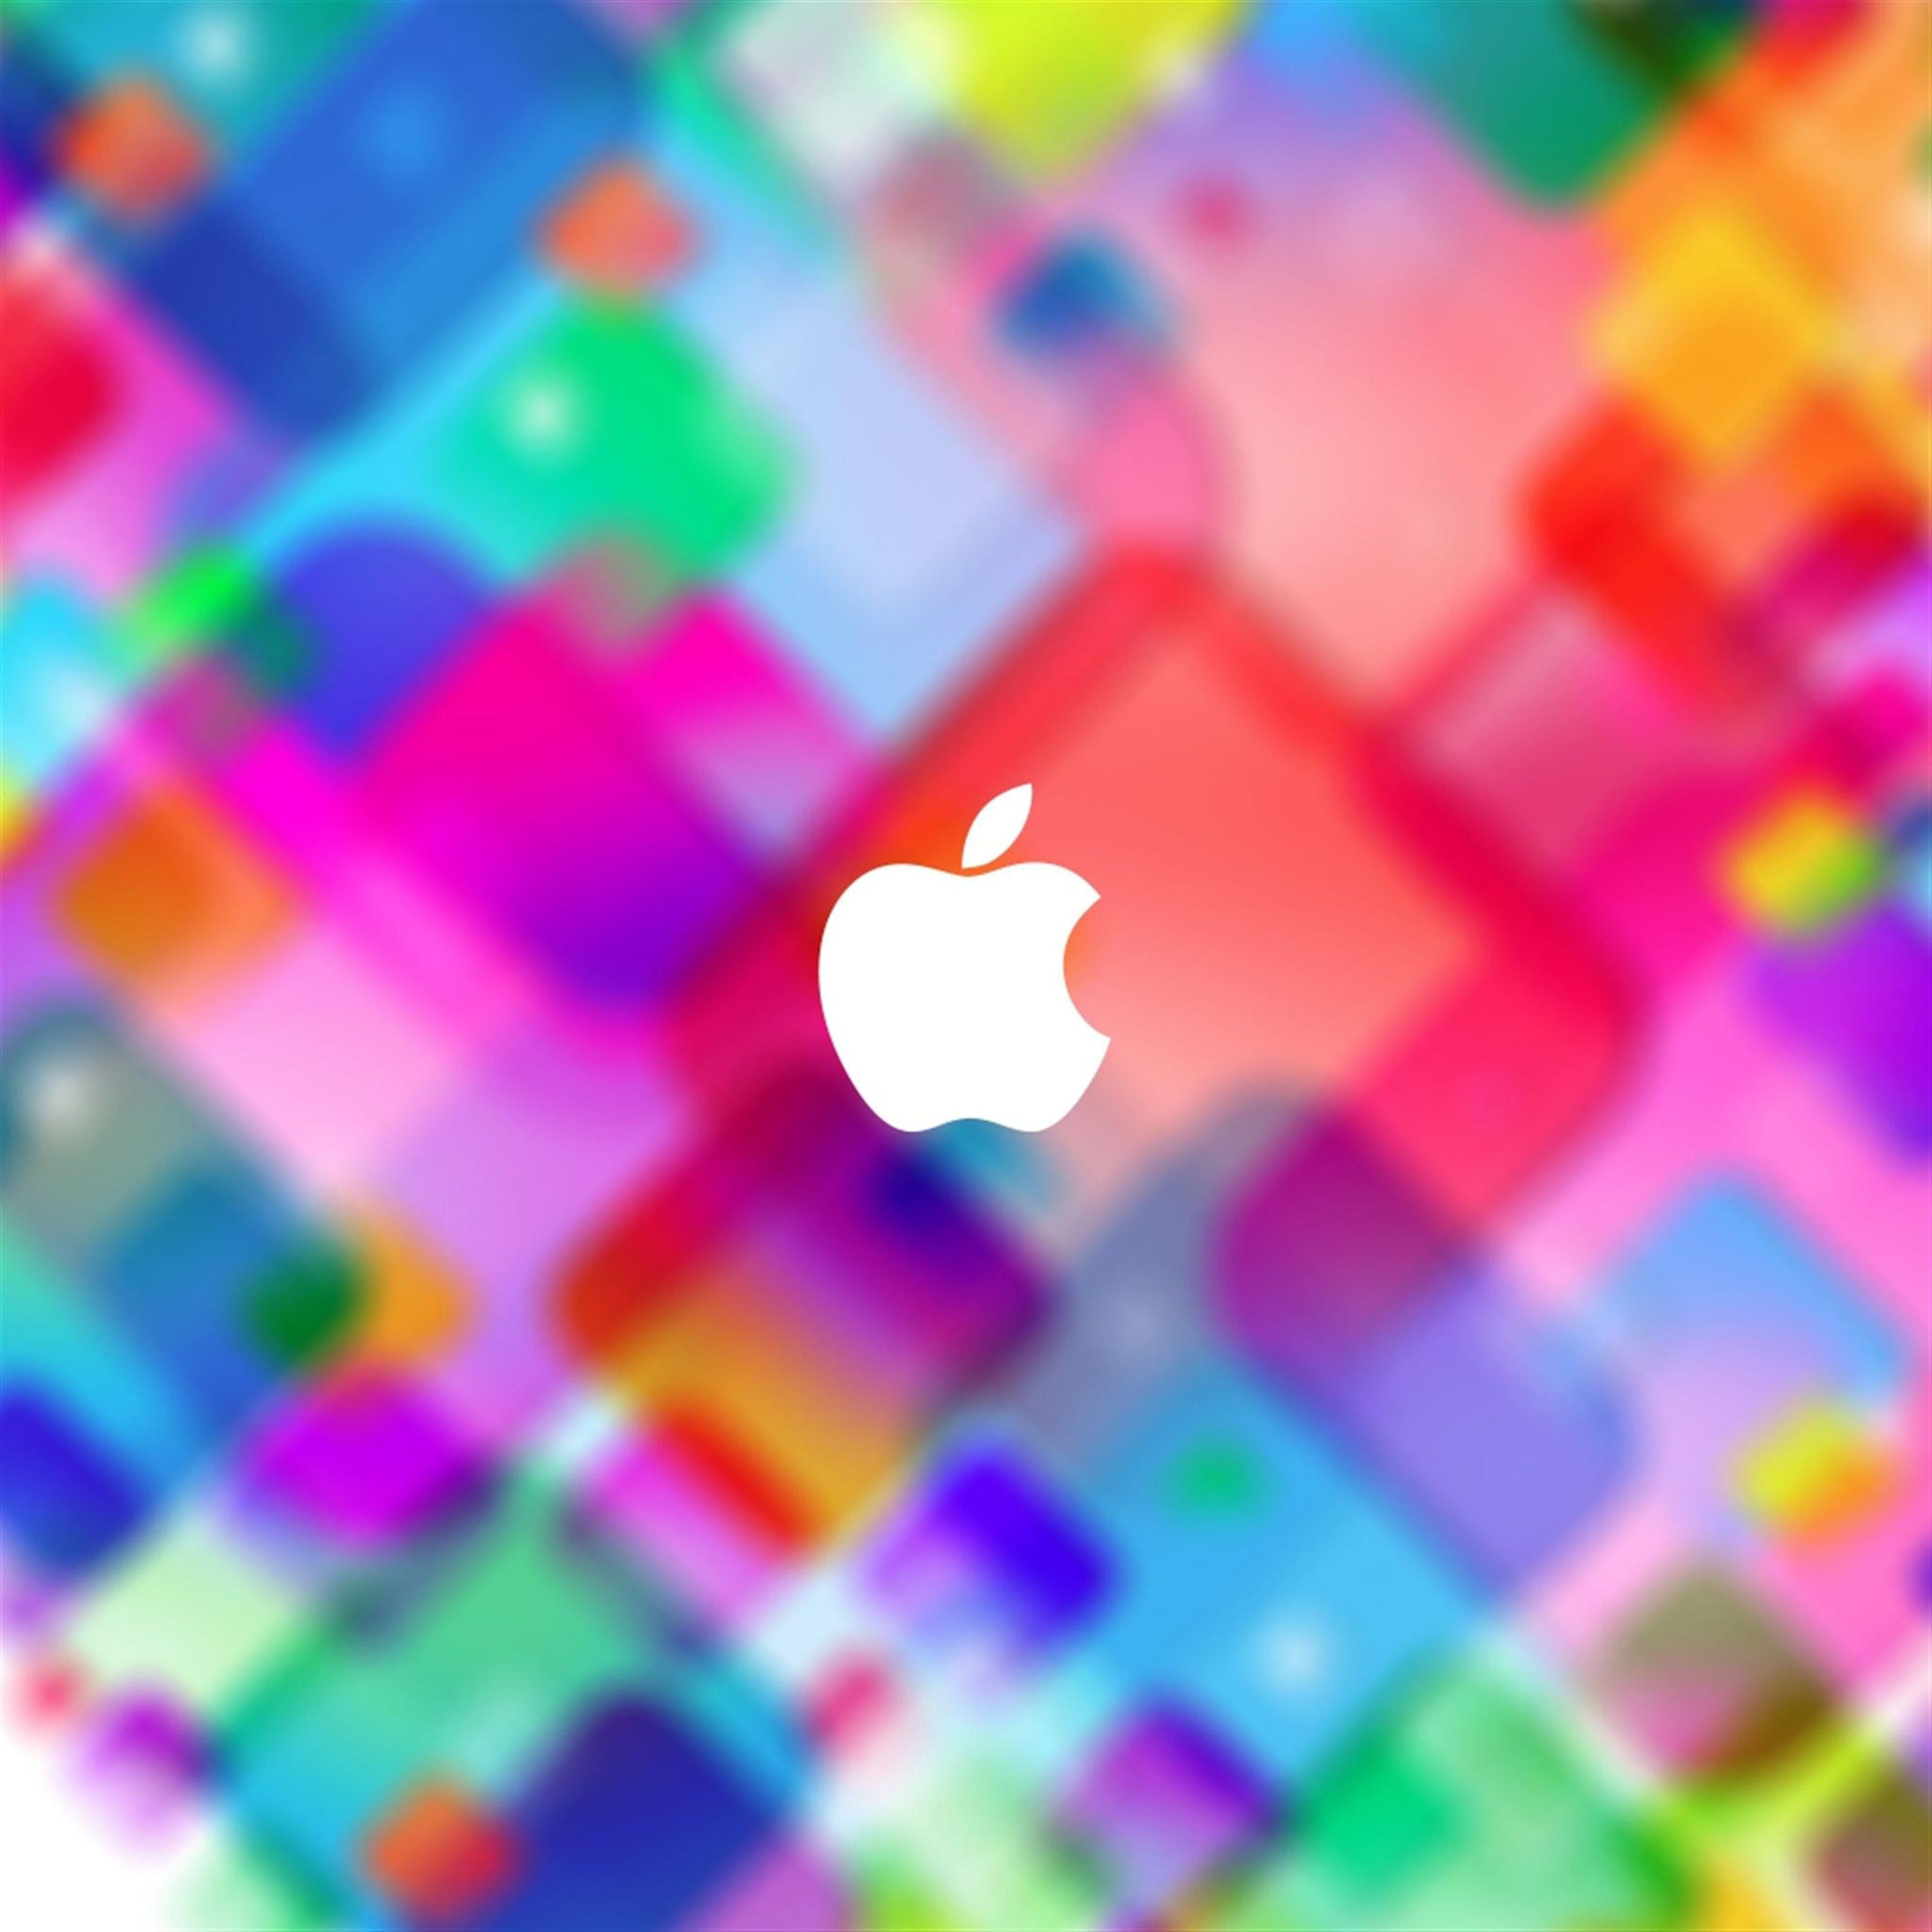 Apple iPad Pro Wallpaper 126 Ipad mini wallpaper, Apple